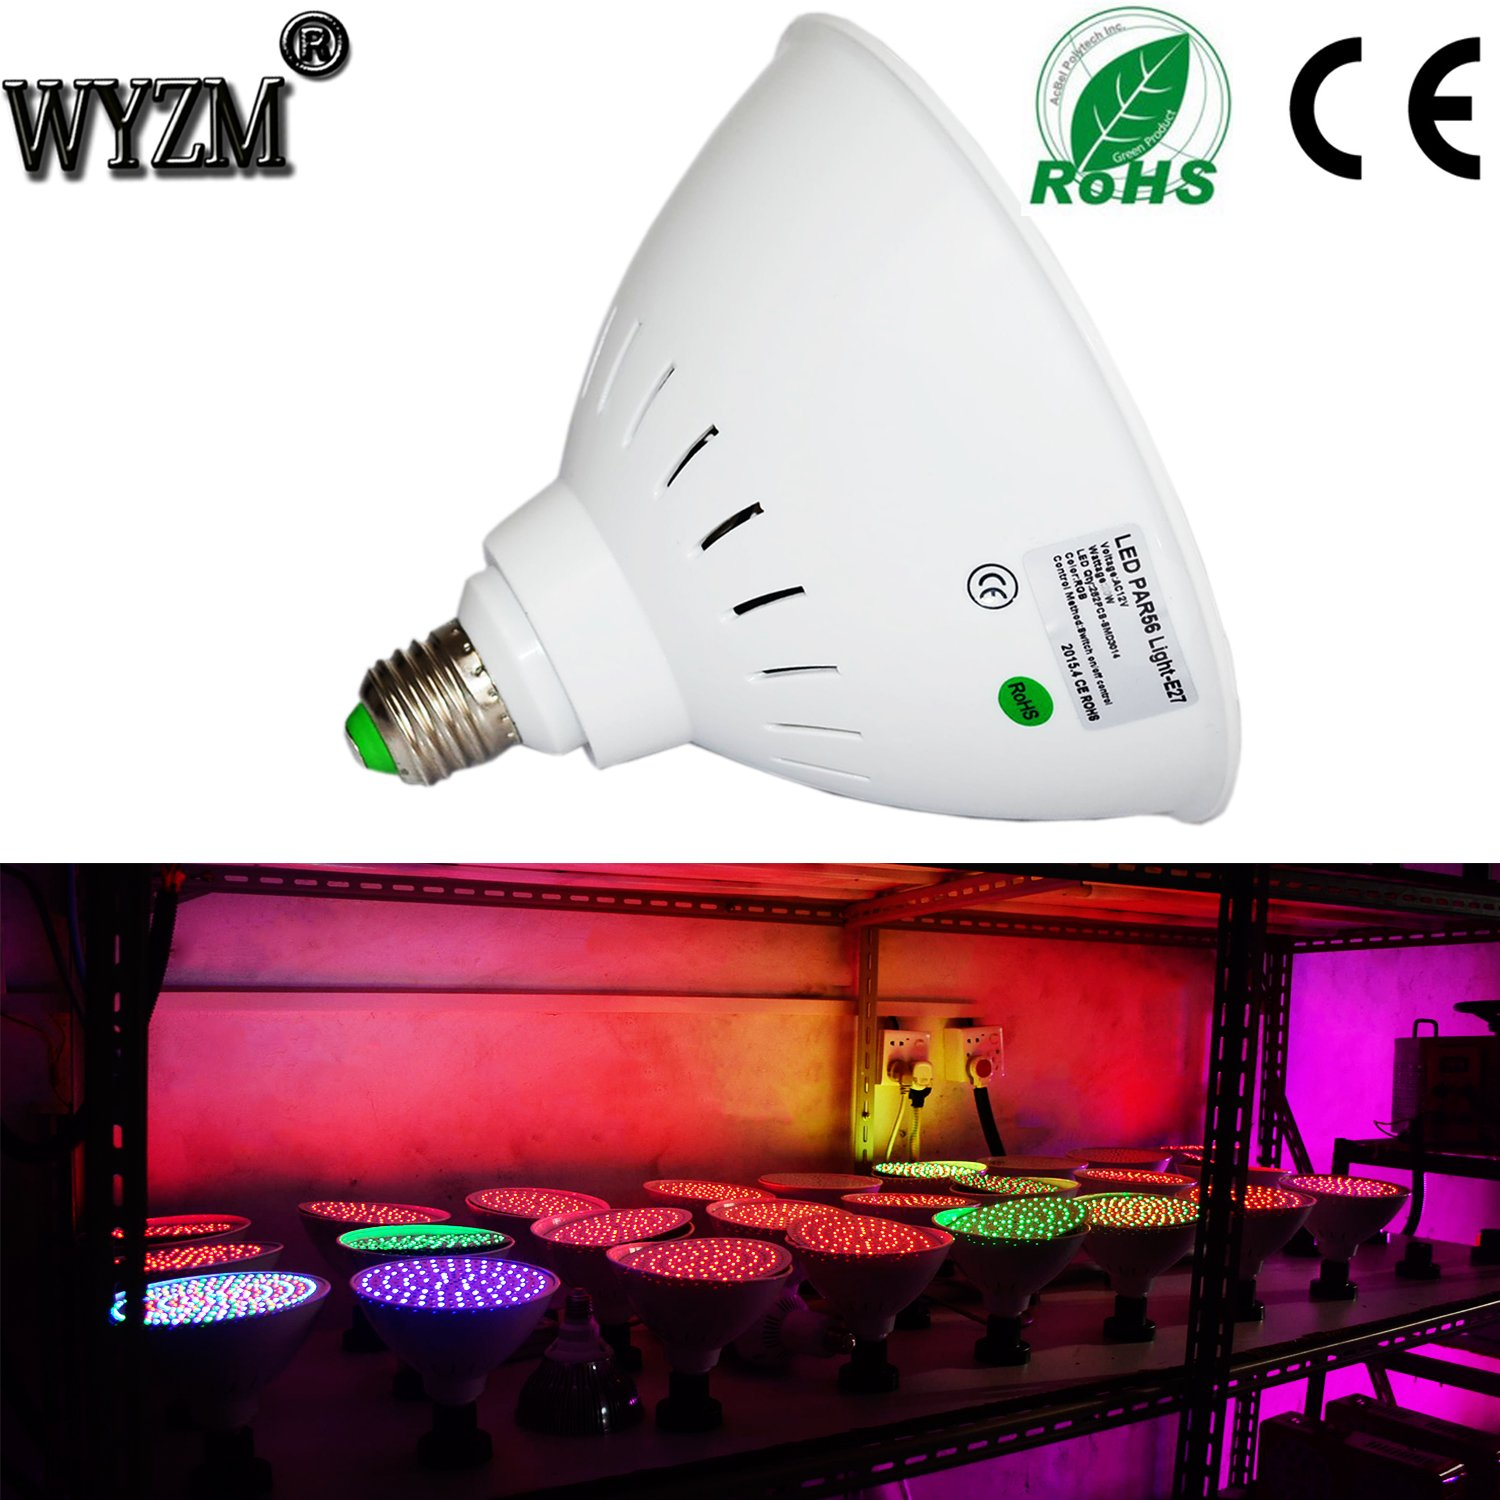 Wyzm 120v 35w Color Changing Swimming Pool Lights Led